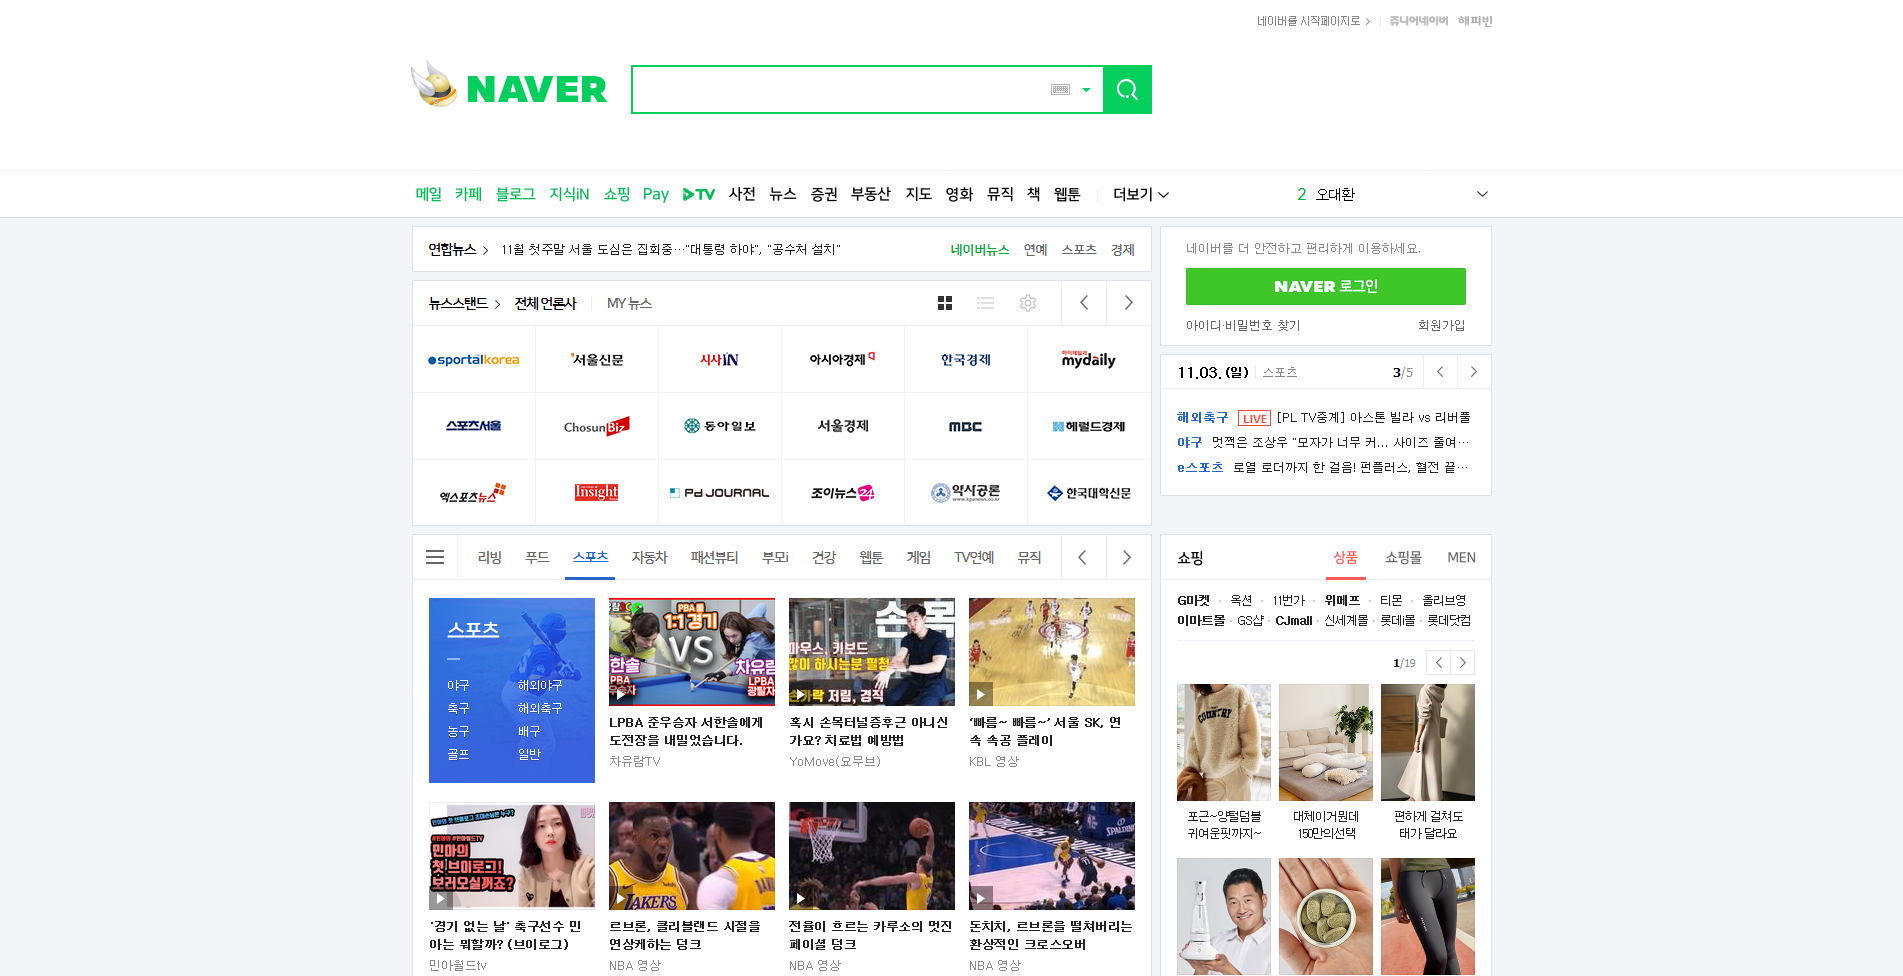 Old NAVER